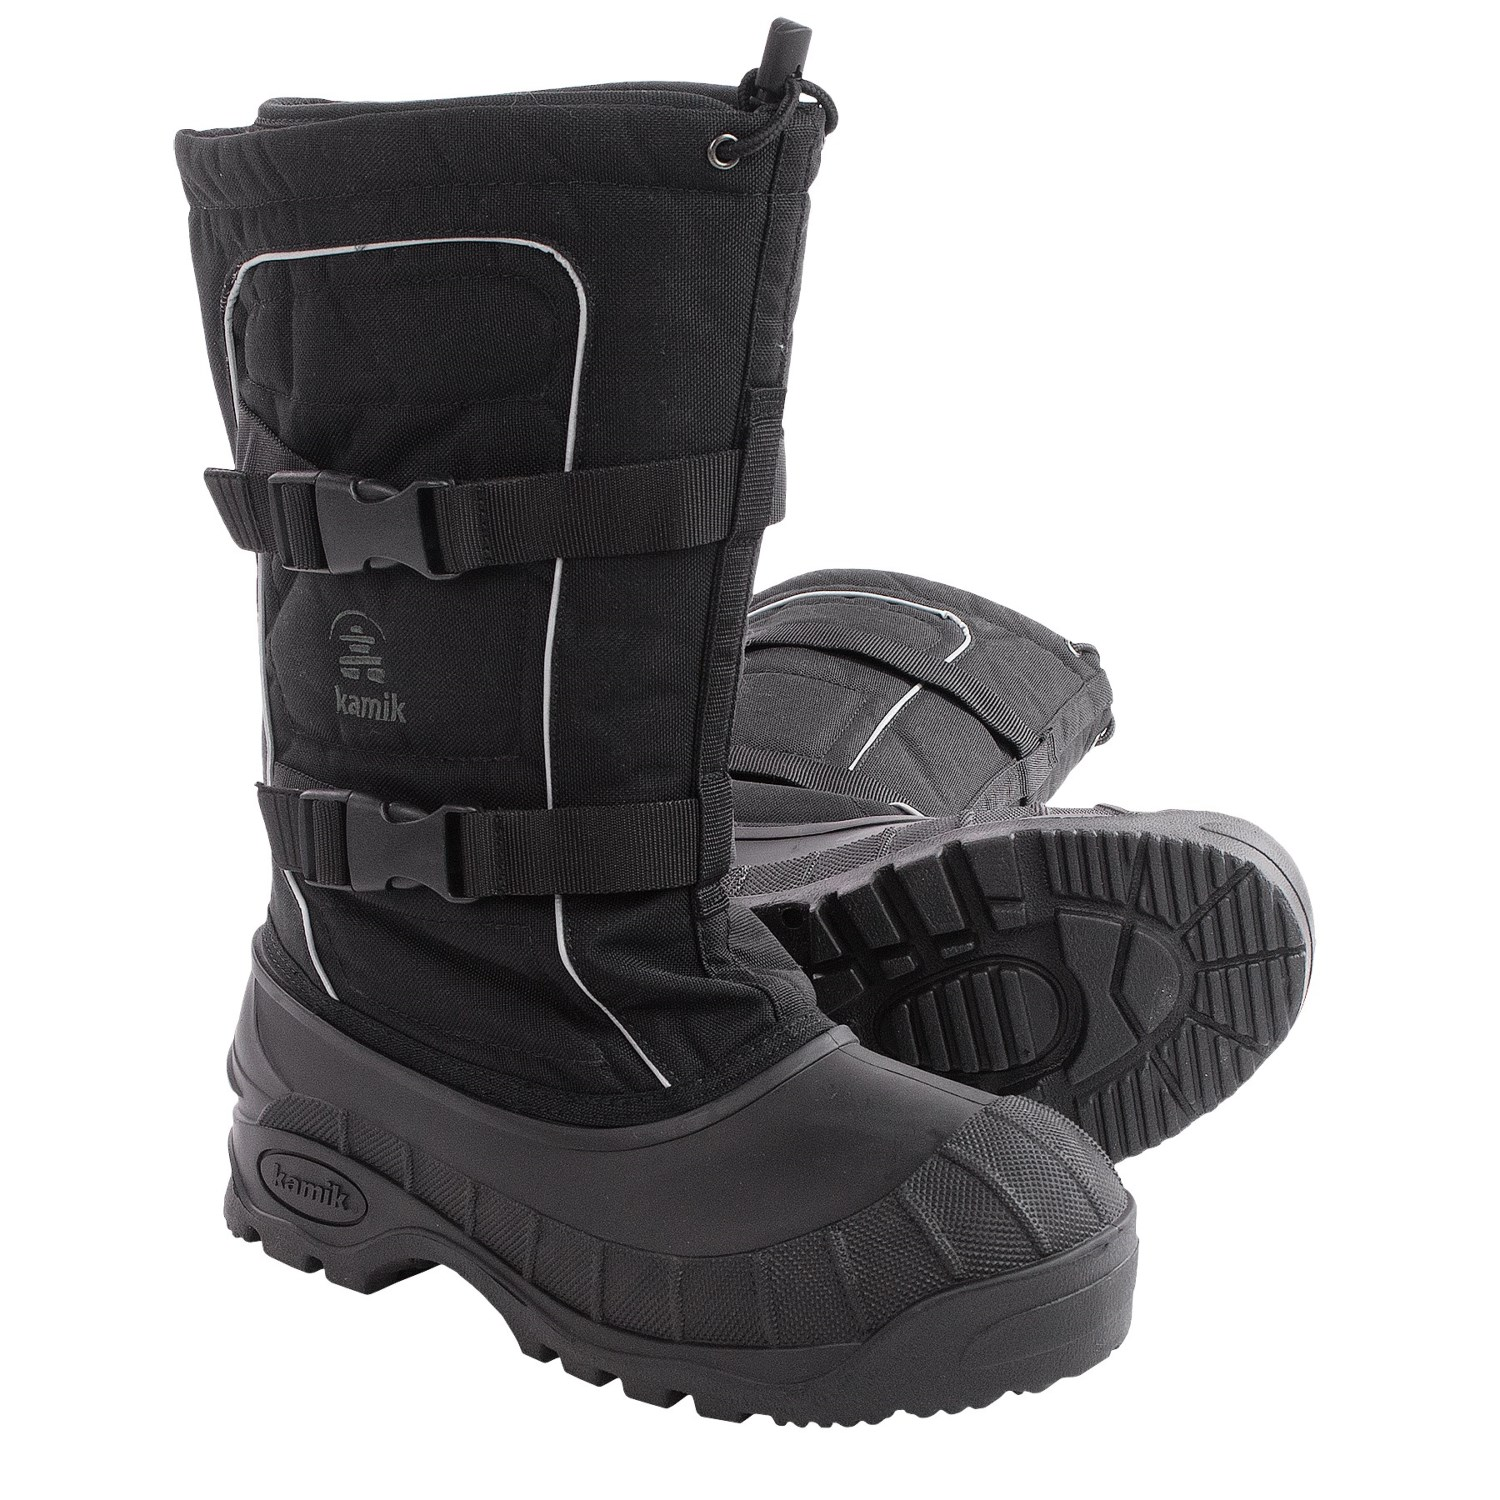 Kamik Helsinki Pac Boots (For Men) - Save 87%